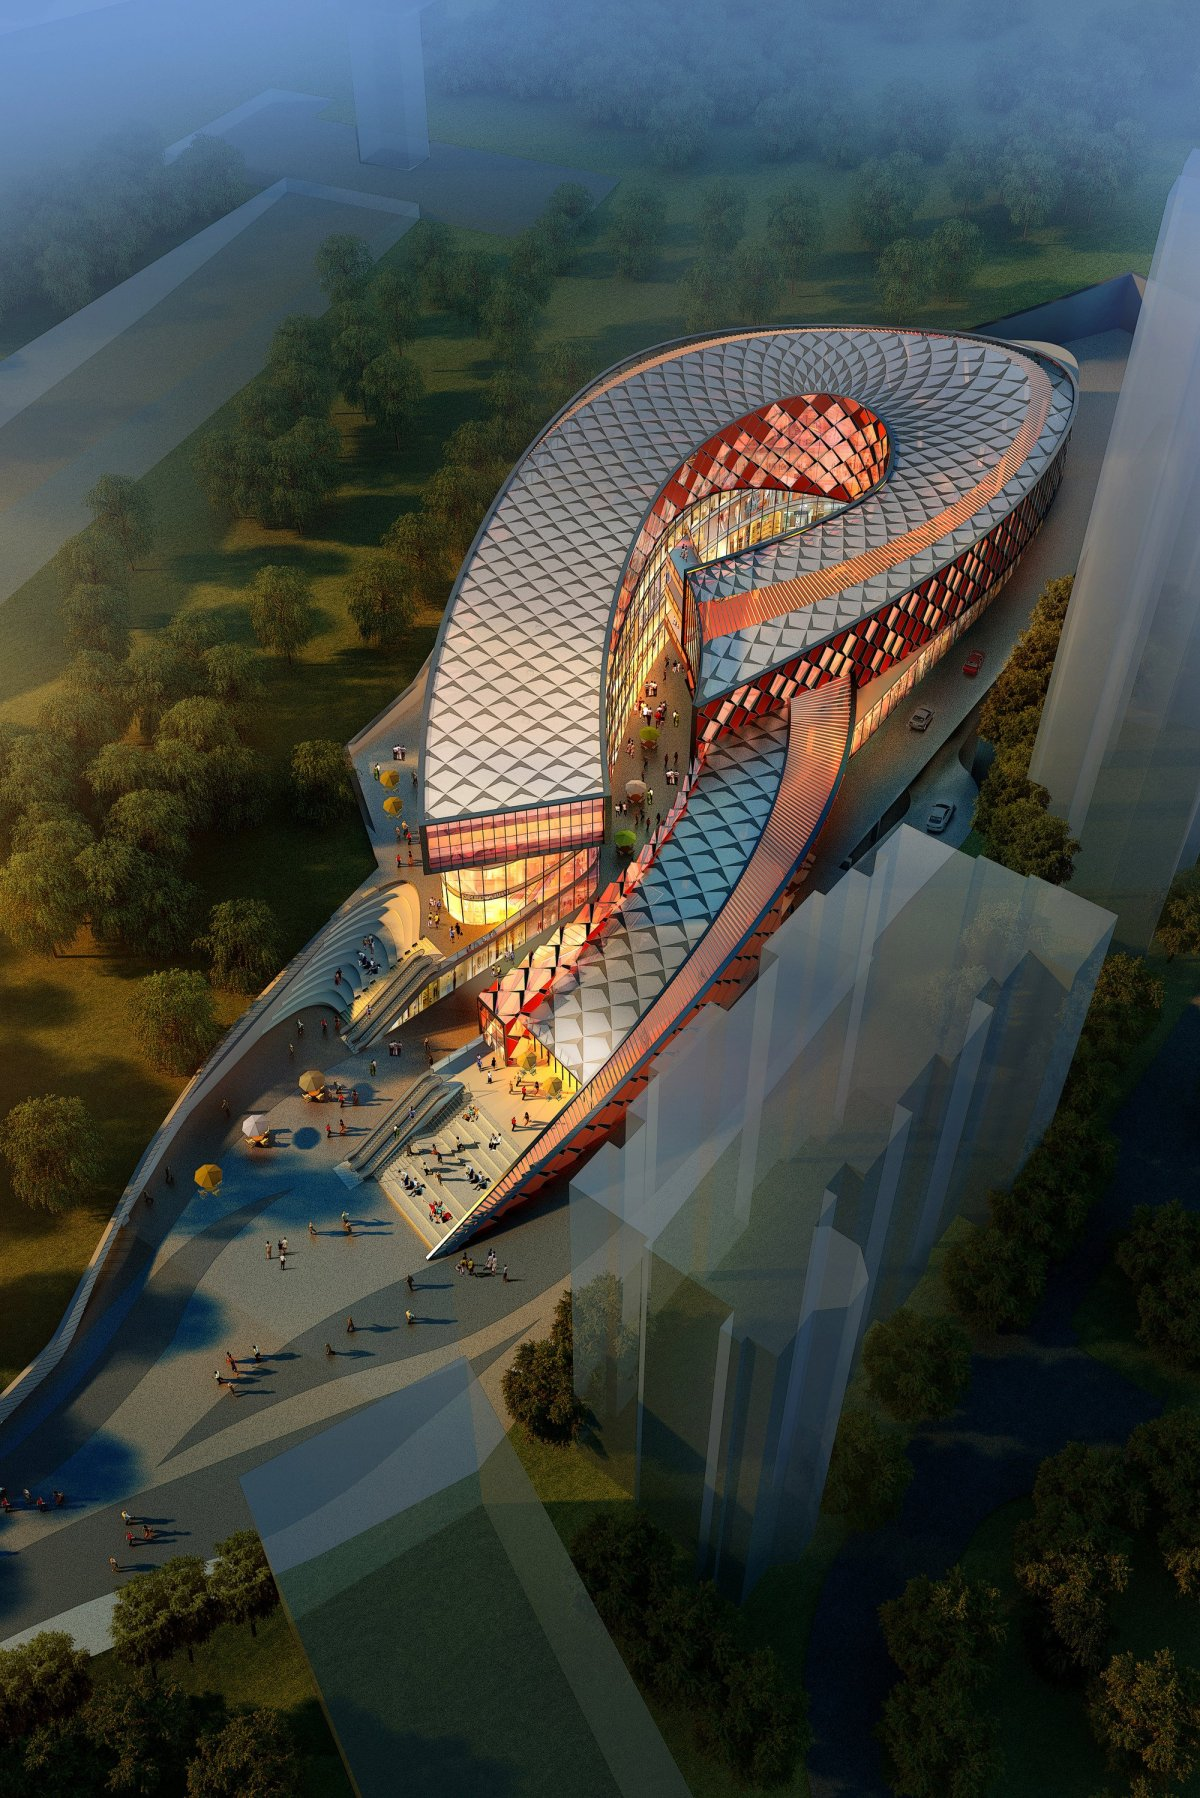 554d29a1e58ecece5c000042_sunlay-design-group-s-folklore-inspired-retail-center-will-soon-rise-in-china_retail_center